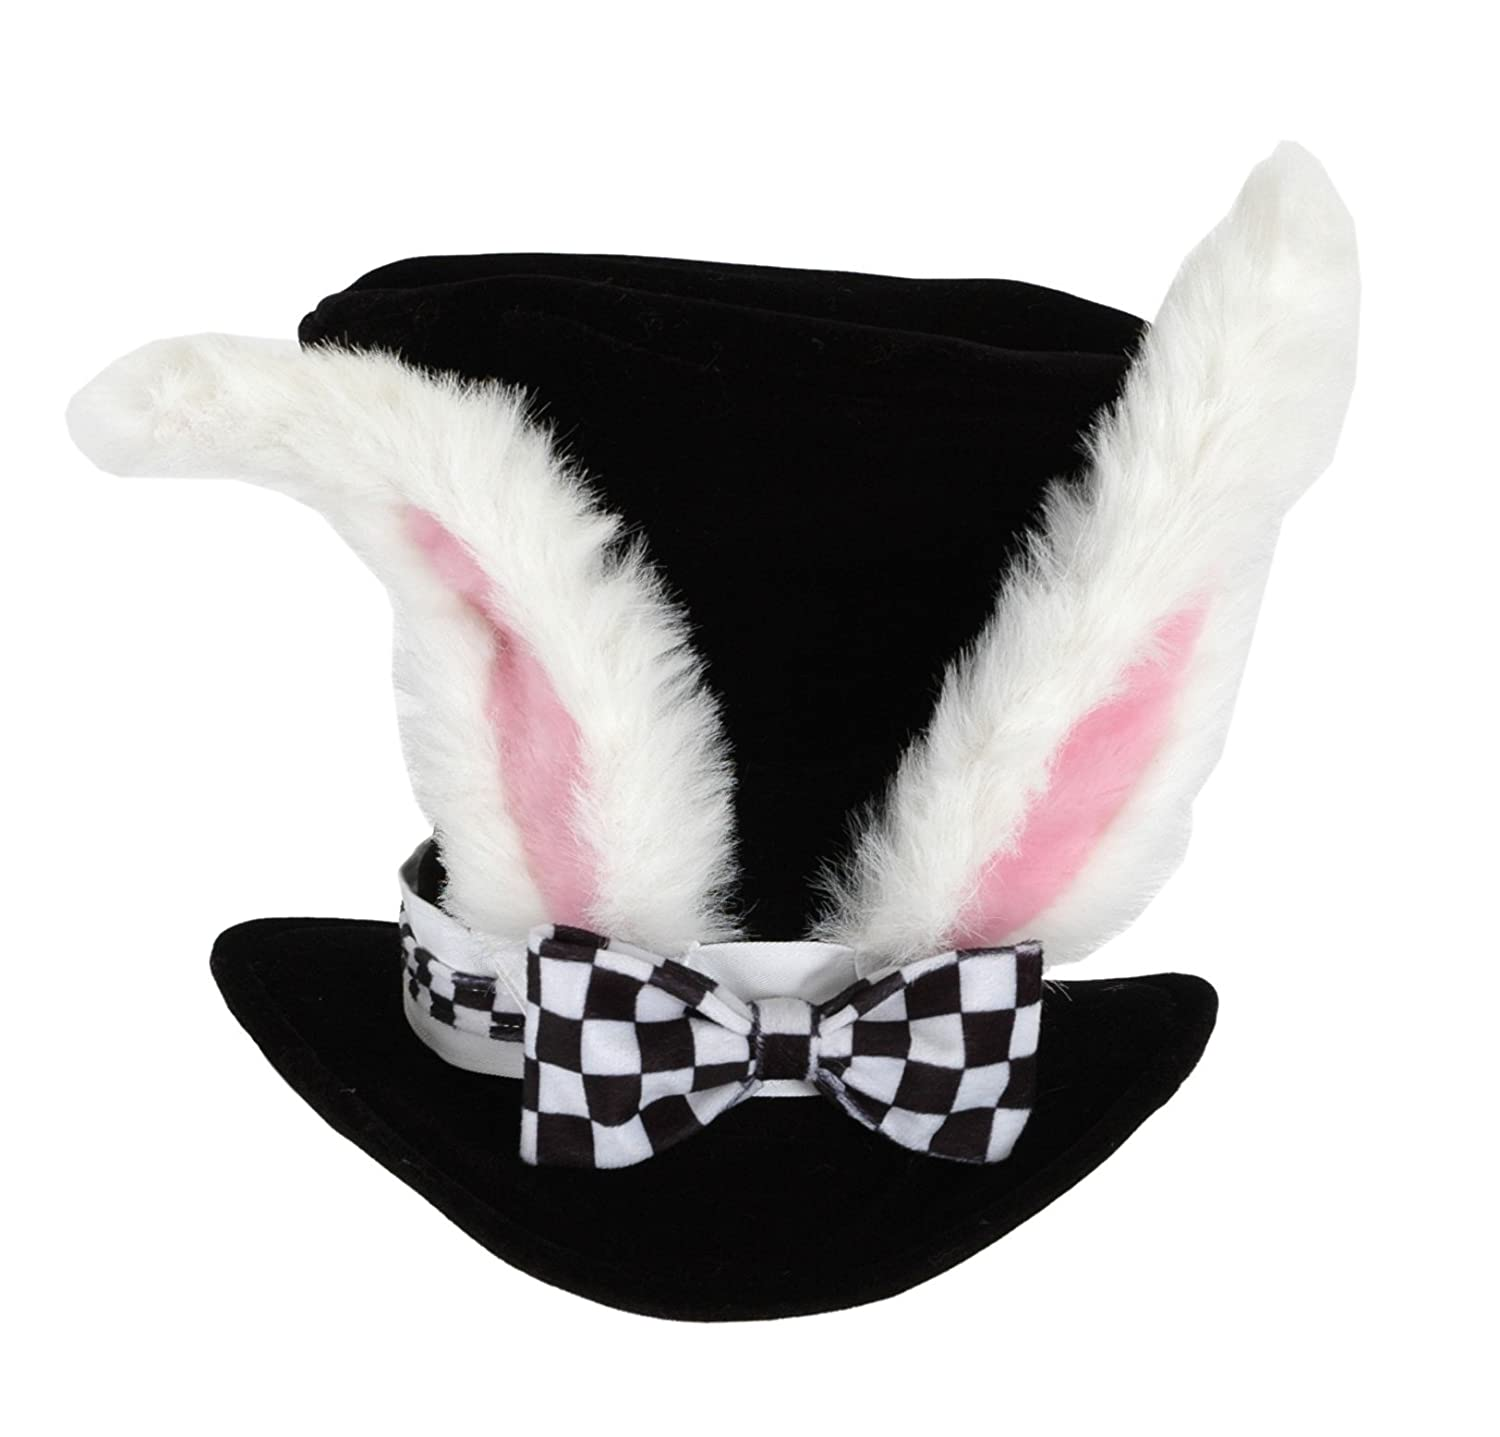 Elope Black Costume Top Hat with White Rabbit Ears Elope Inc. A5401